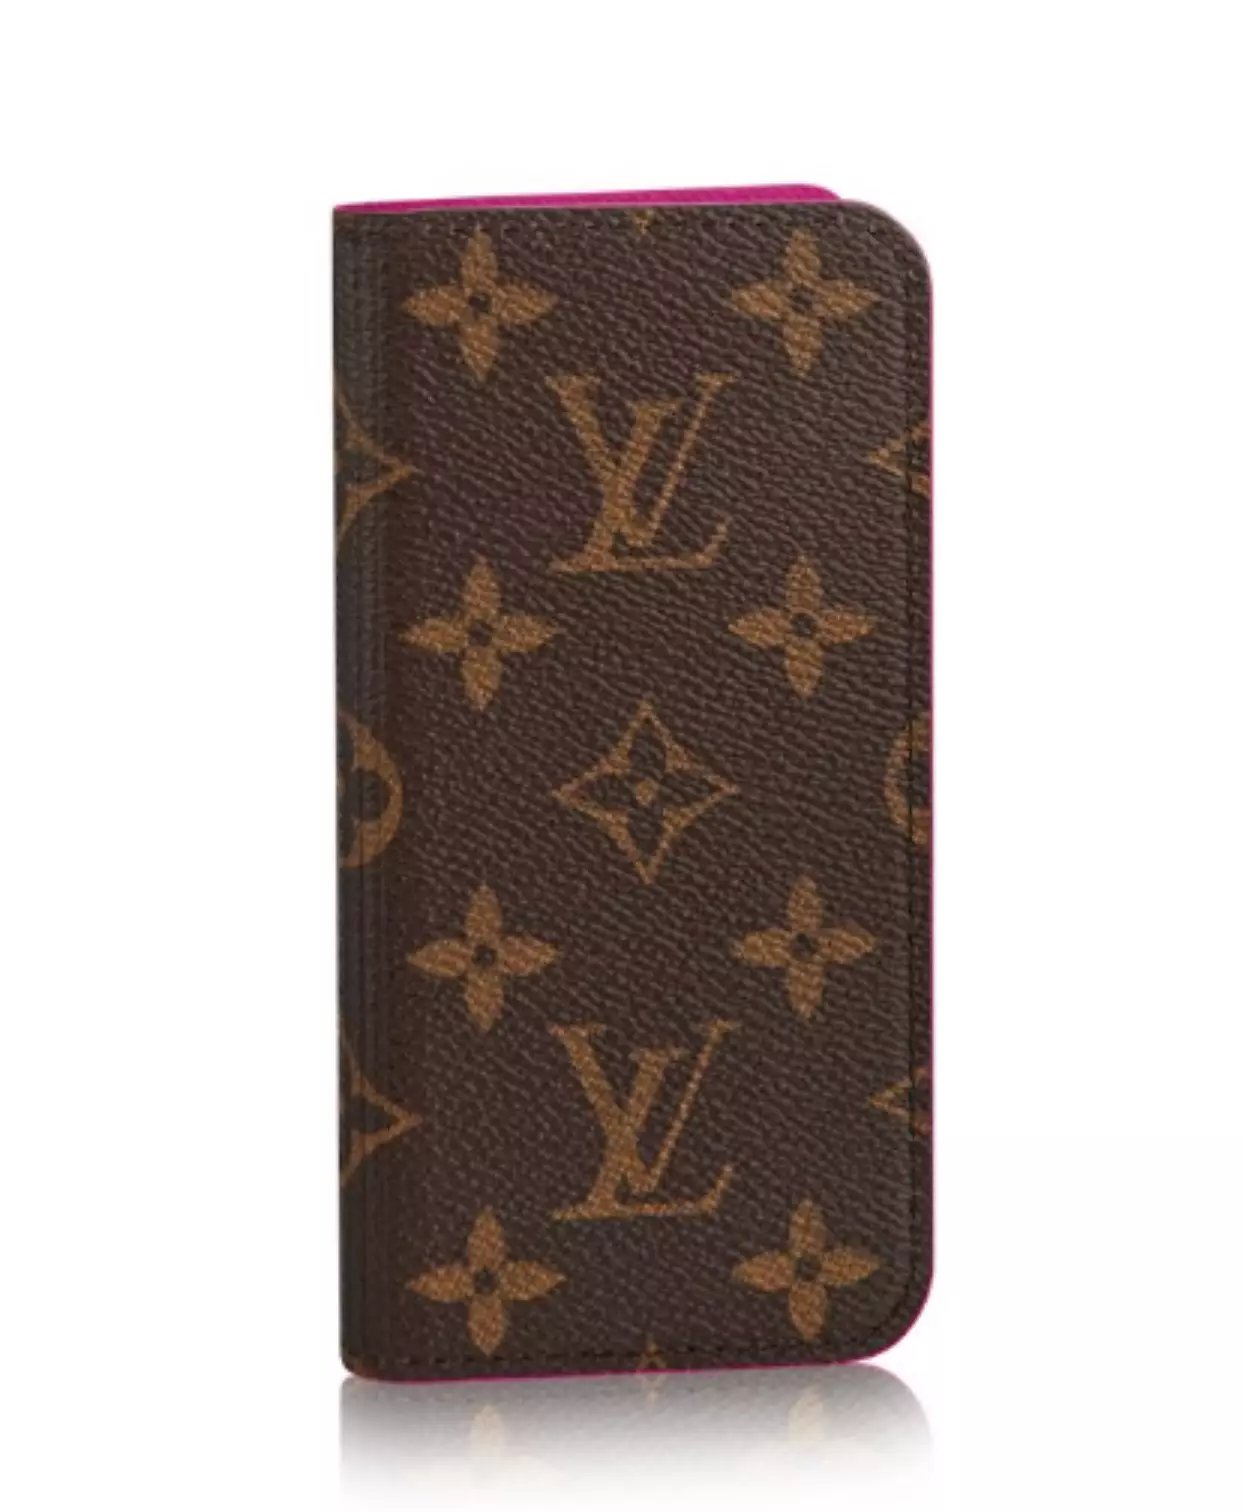 iphone hülle selbst iphone hülle kaufen Louis Vuitton iphone7 Plus hülle iphone ca7 E 7lbst gestalten wann neues iphone handyhüllen online kaufen iphone 7 Plus kappen iphone 7 Plus dünne hülle hülle 7